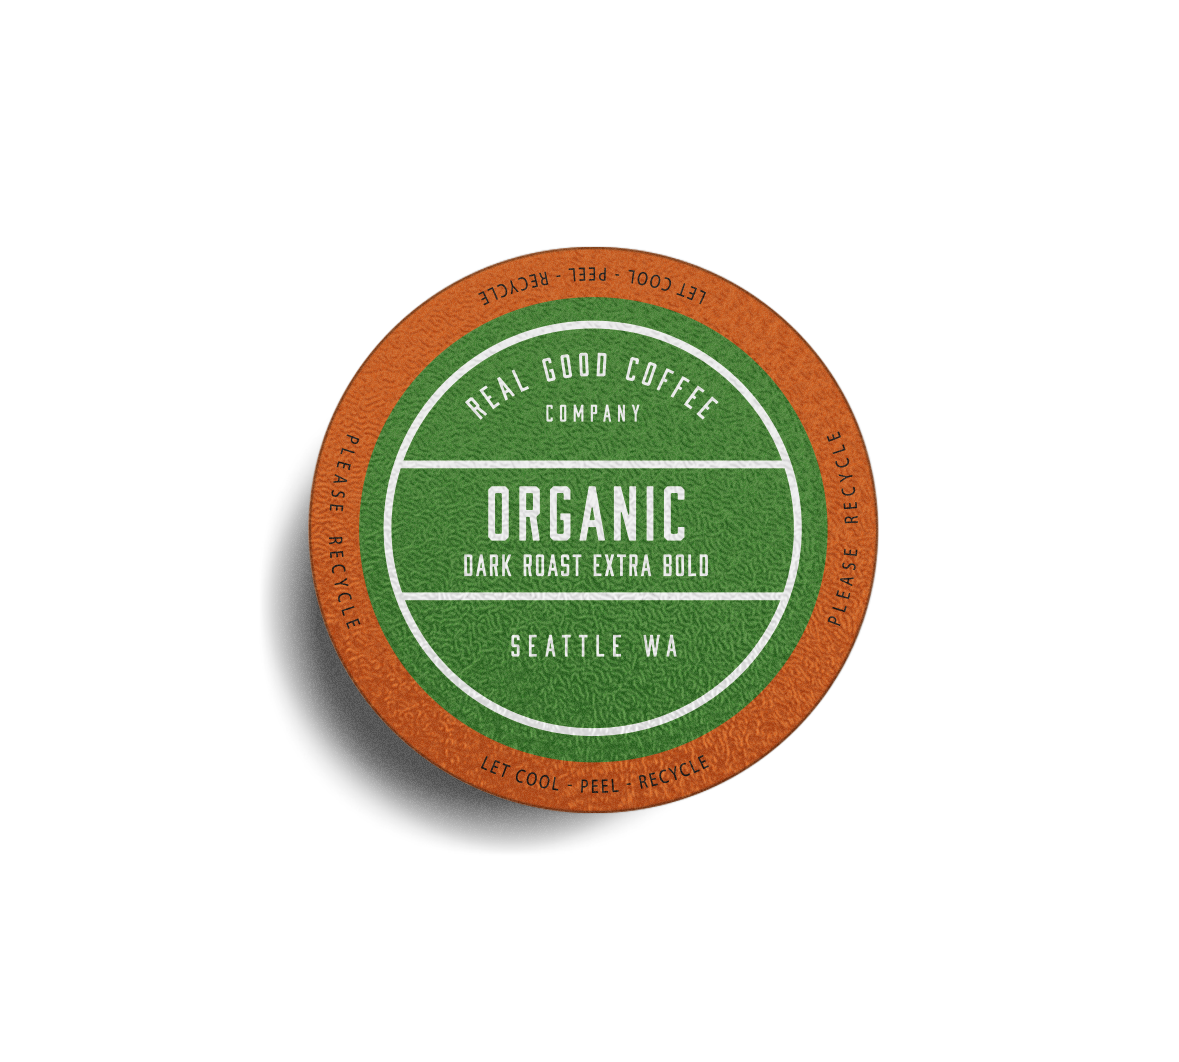 USDA organic coffee k cups, organic dark roast coffee k cups, organic dark roast k cups